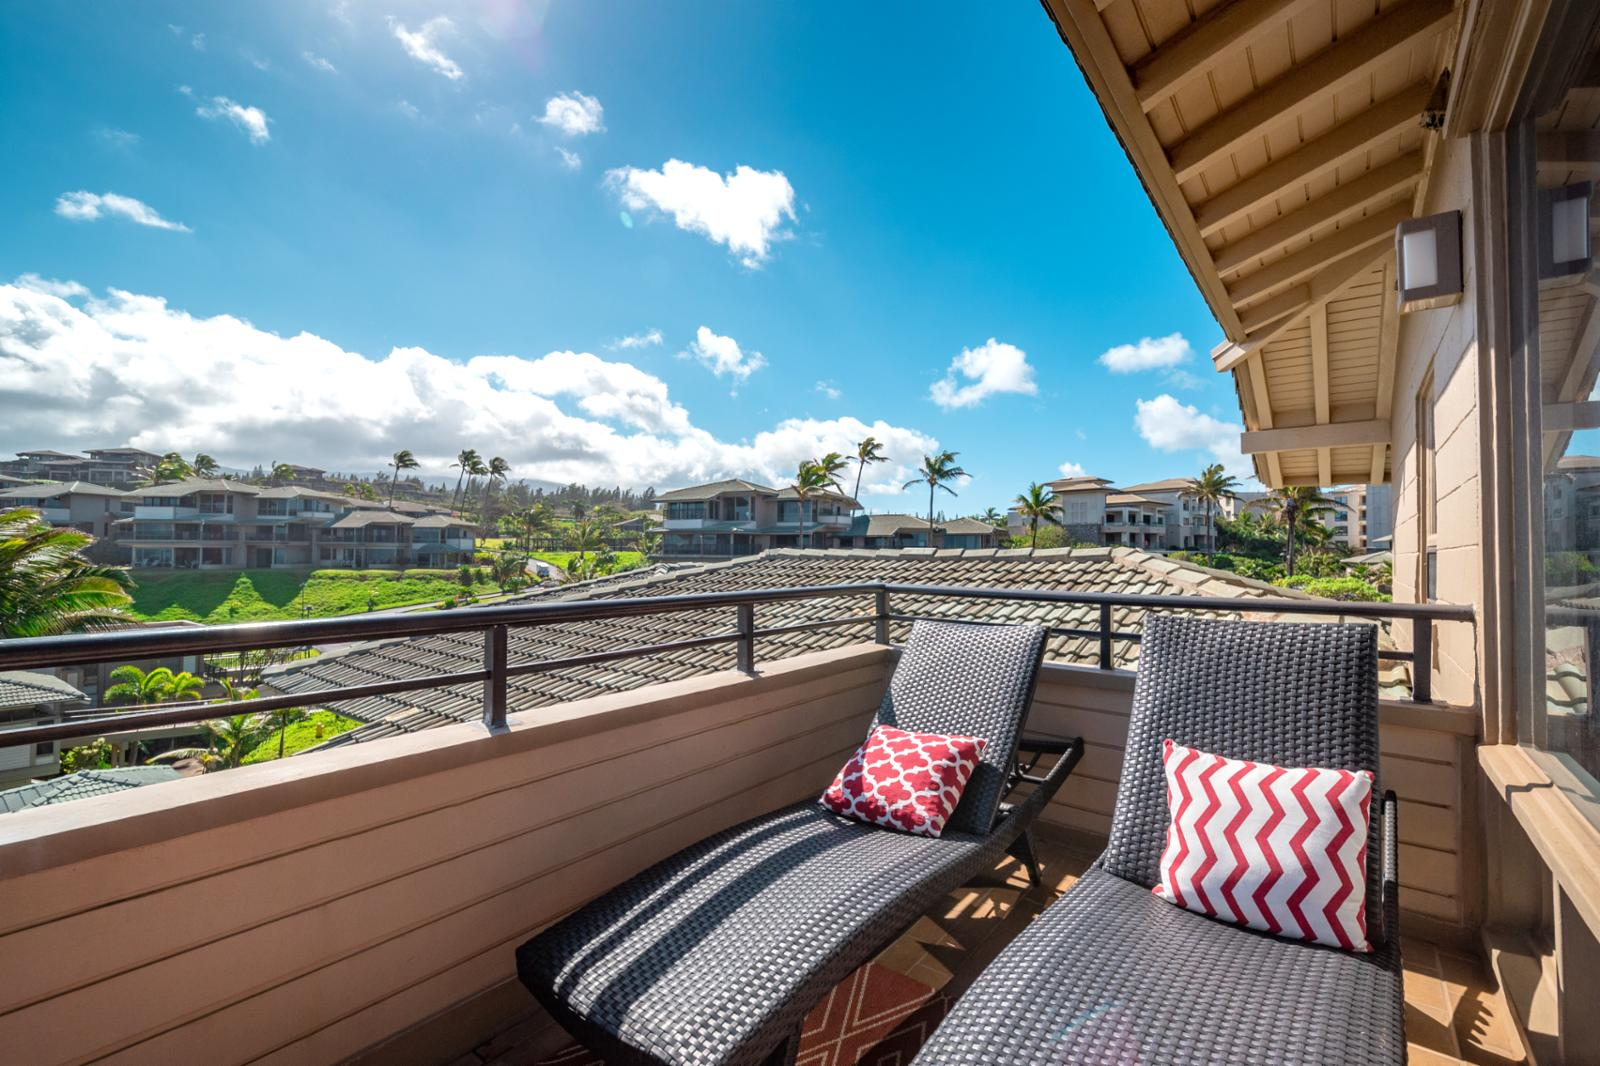 Sit back and relax on your private balcony